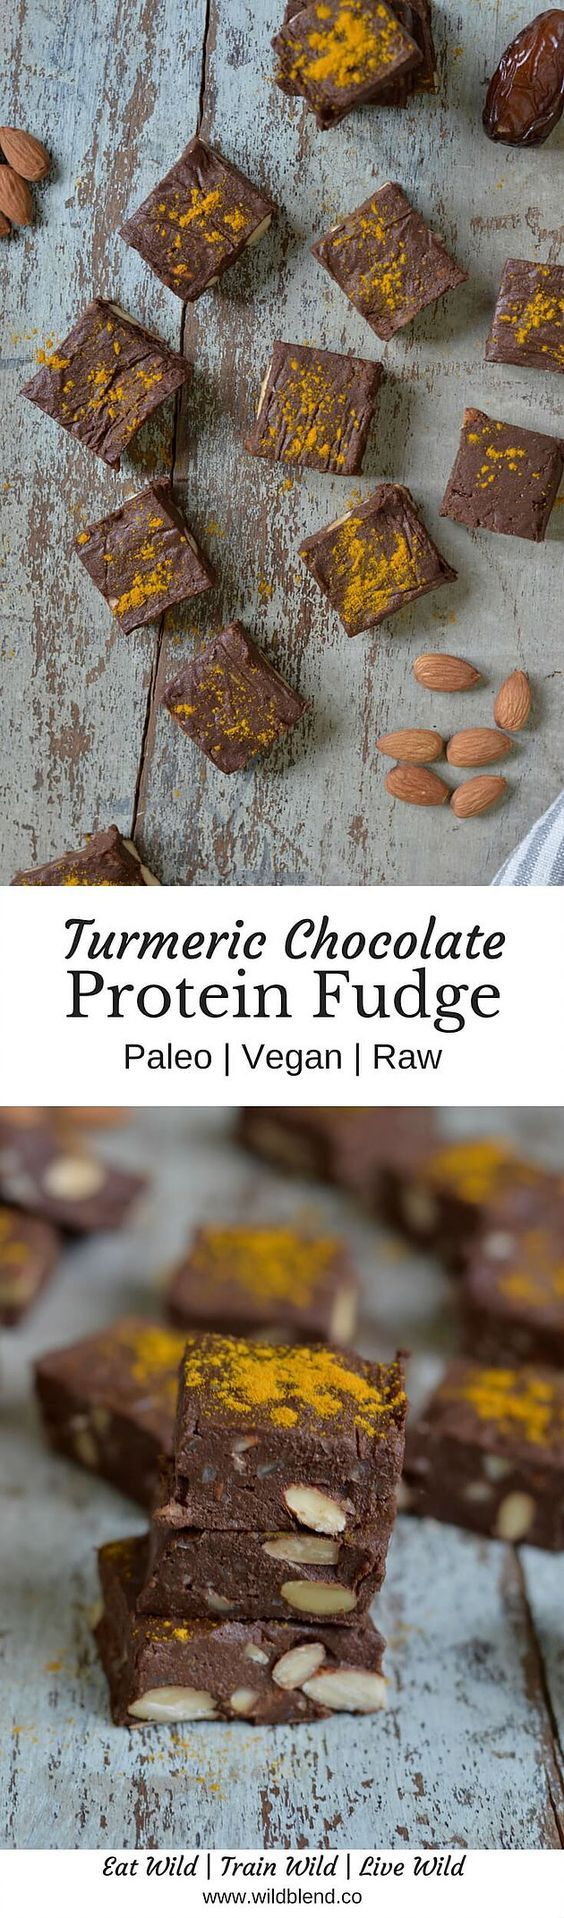 Turmeric Chocolate Protein Fudge | full recipe via http://wildblend.co | Paleo - Vegan - Grain Free - Dairy Free